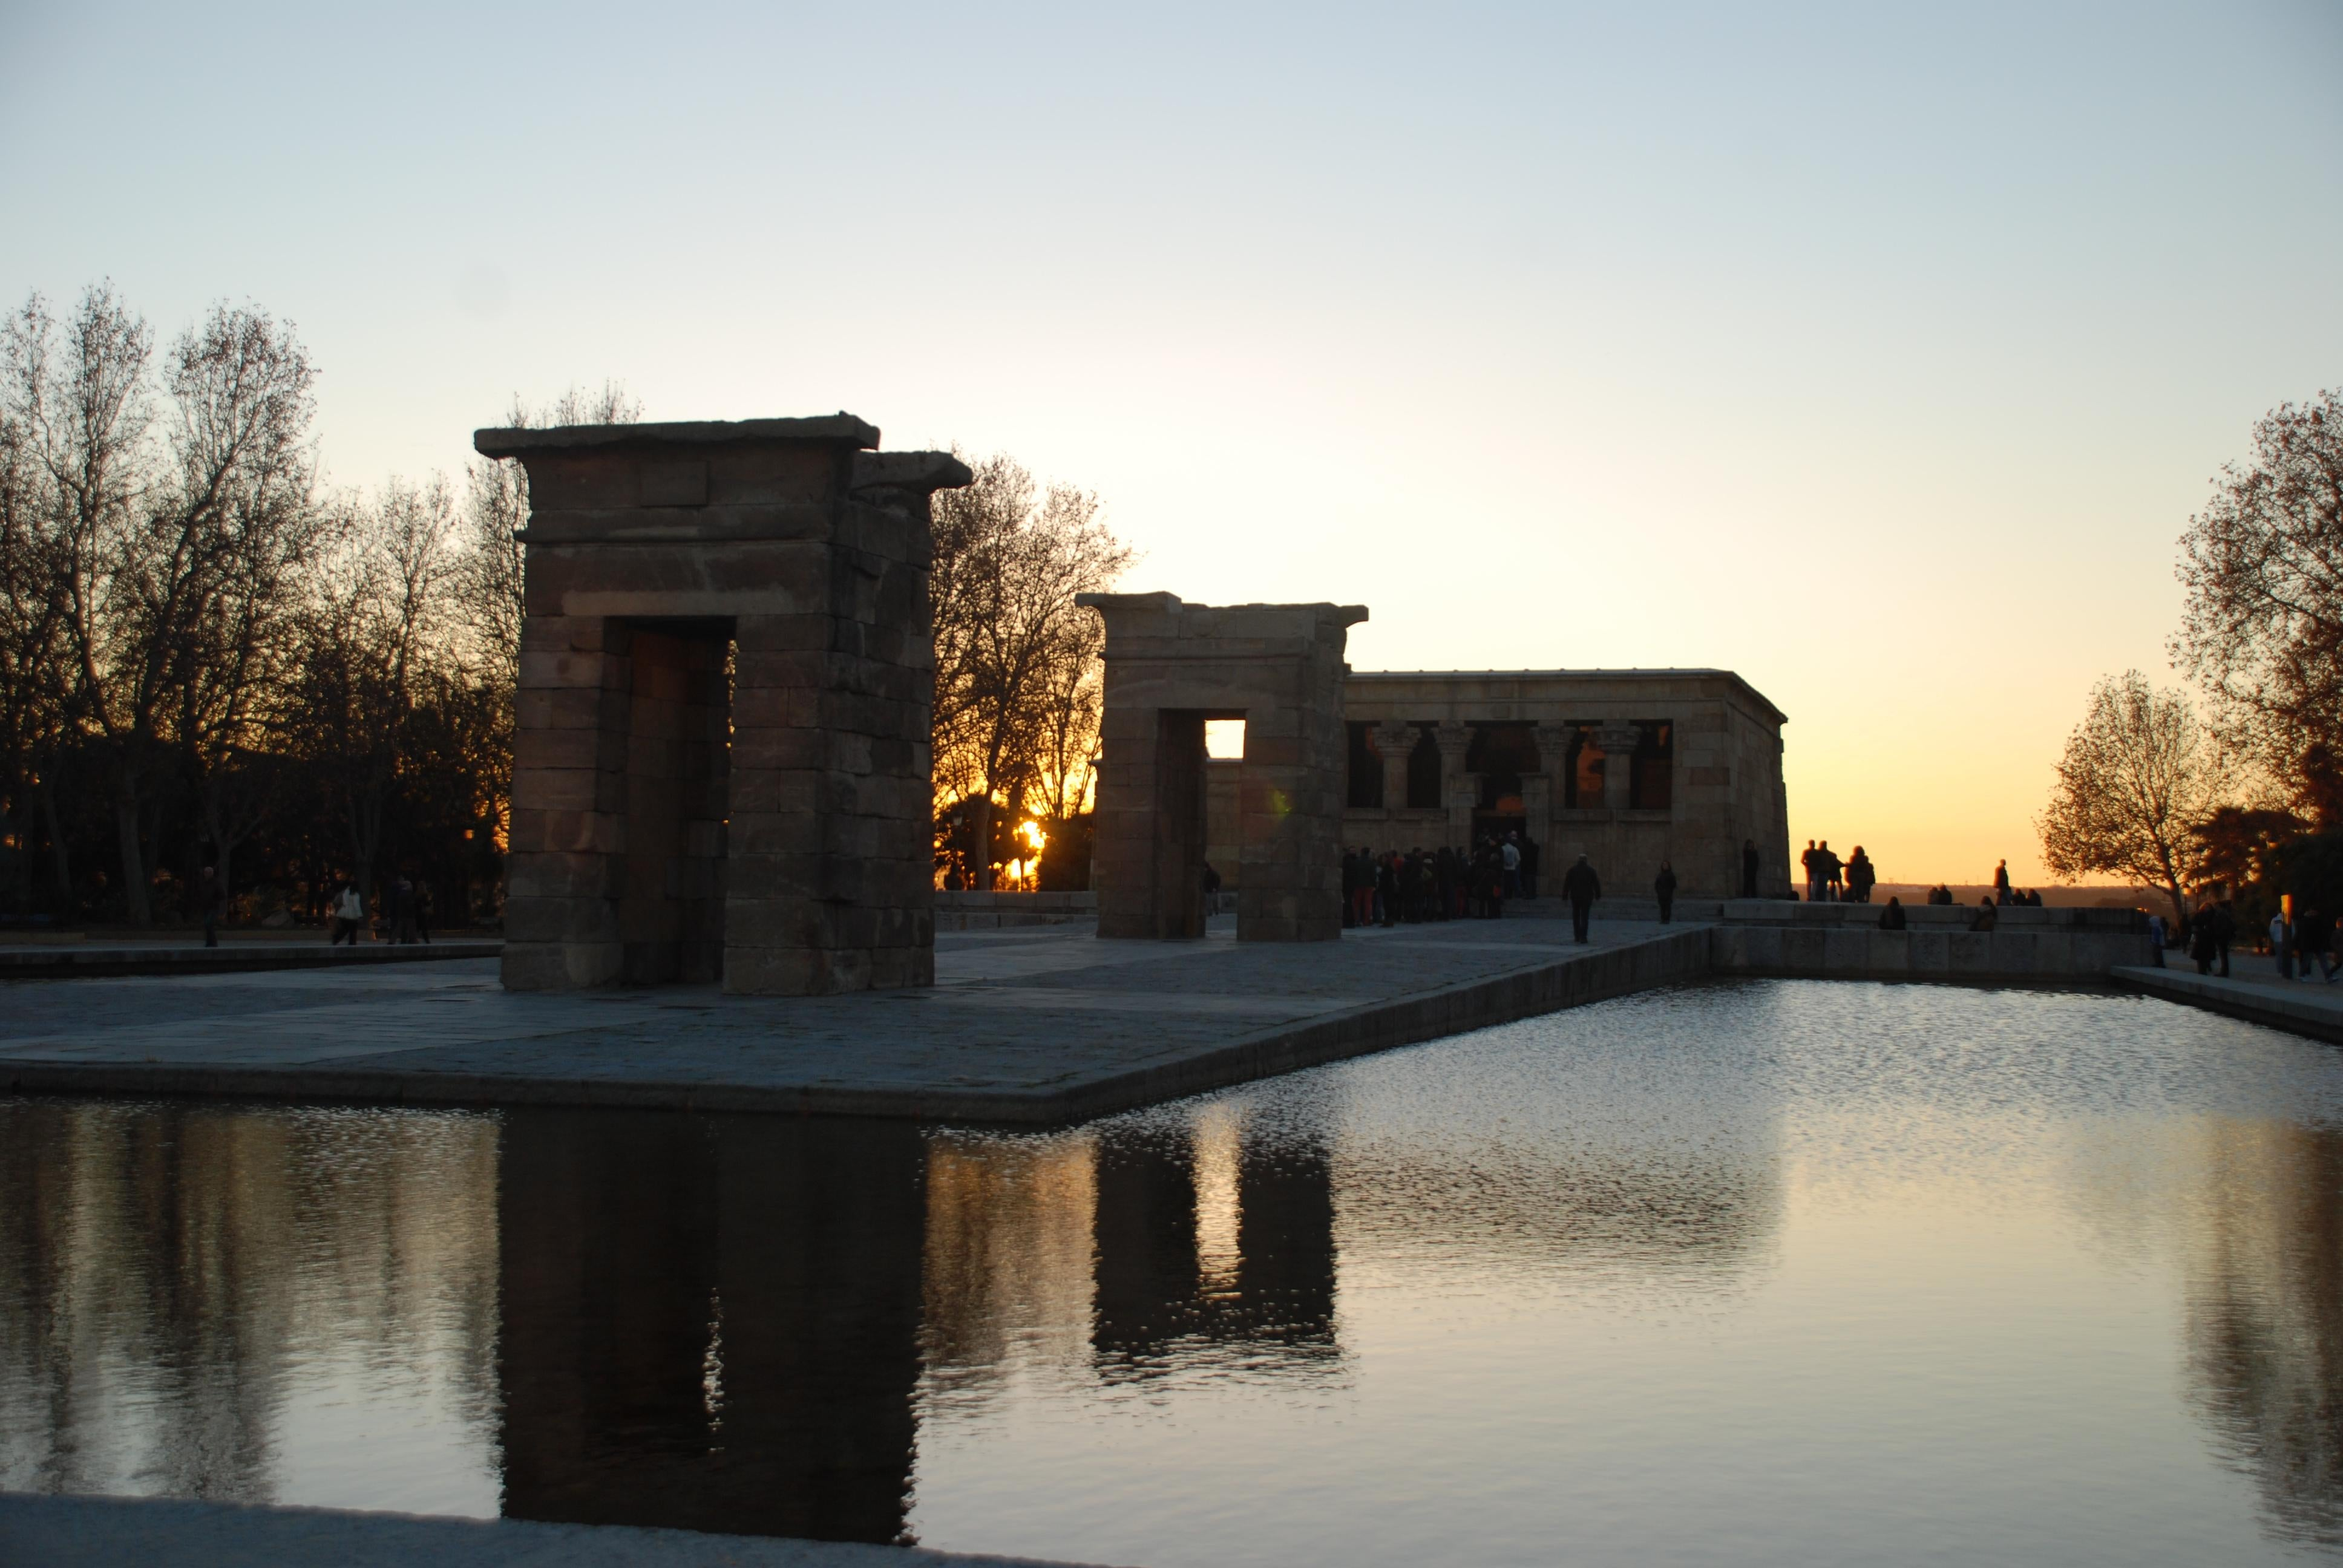 Reflection in Temple of Debod